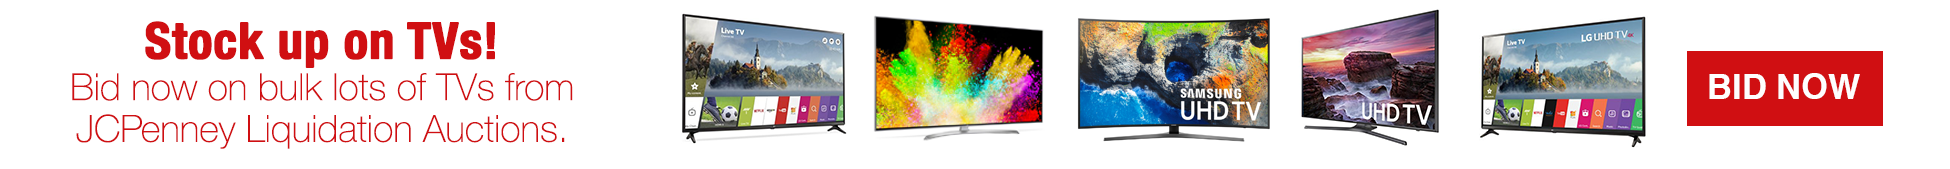 JCPenny Liquidation Auctions Bulk Lots TVs